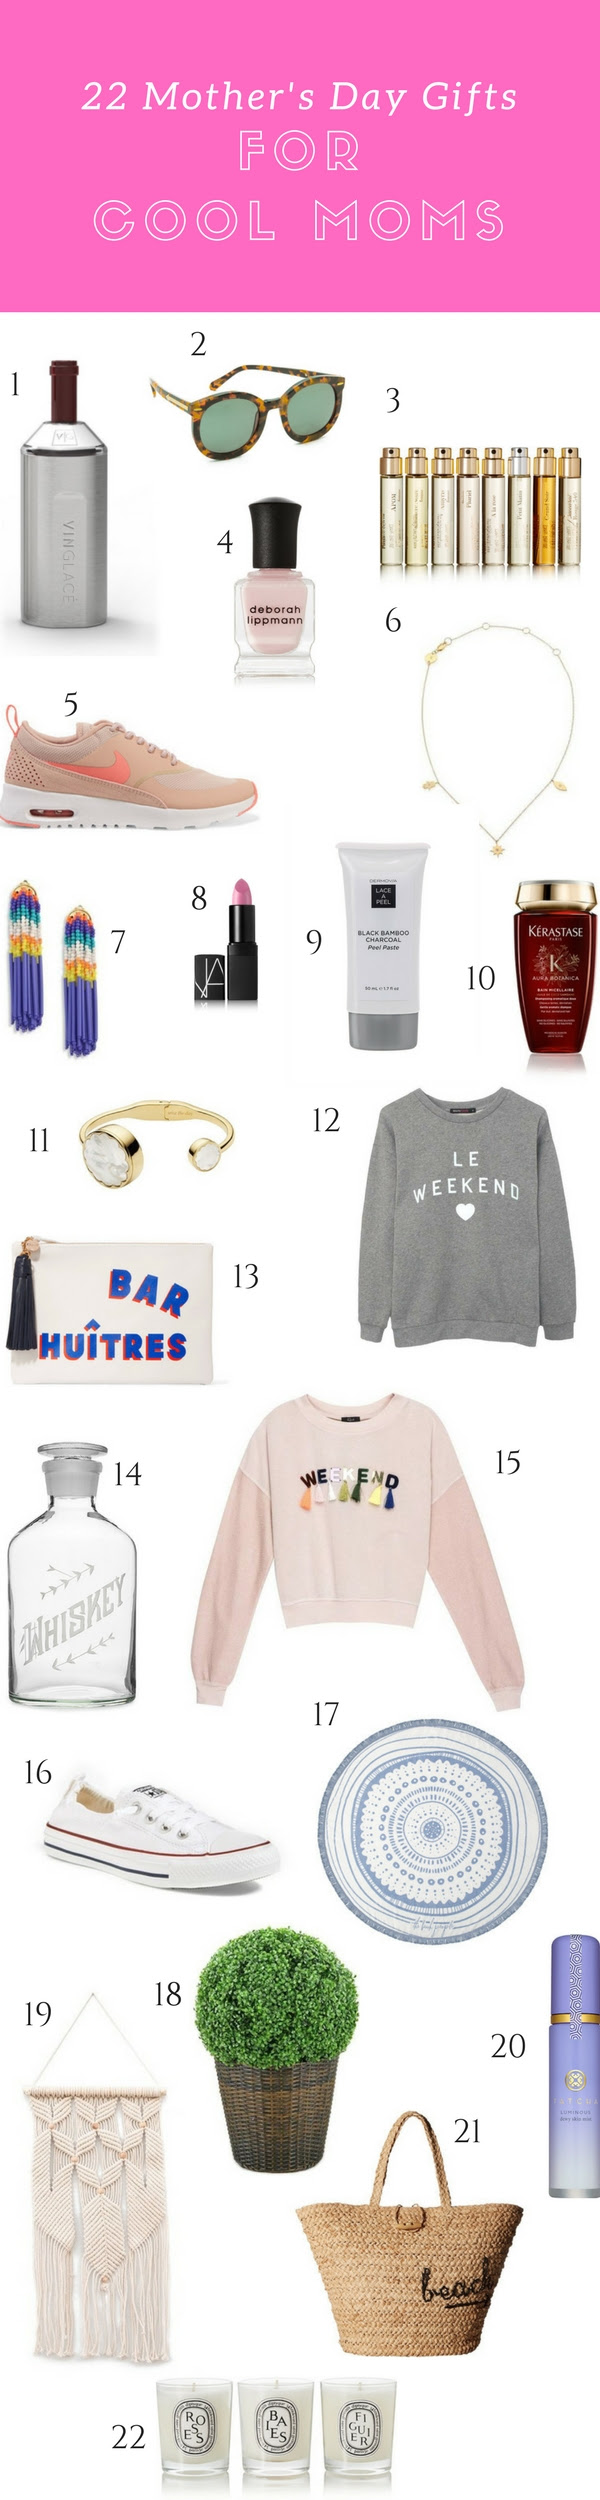 22 Mother\u002639;s Day Gifts for Cool Moms Who Already Have Everything  The Cuteness